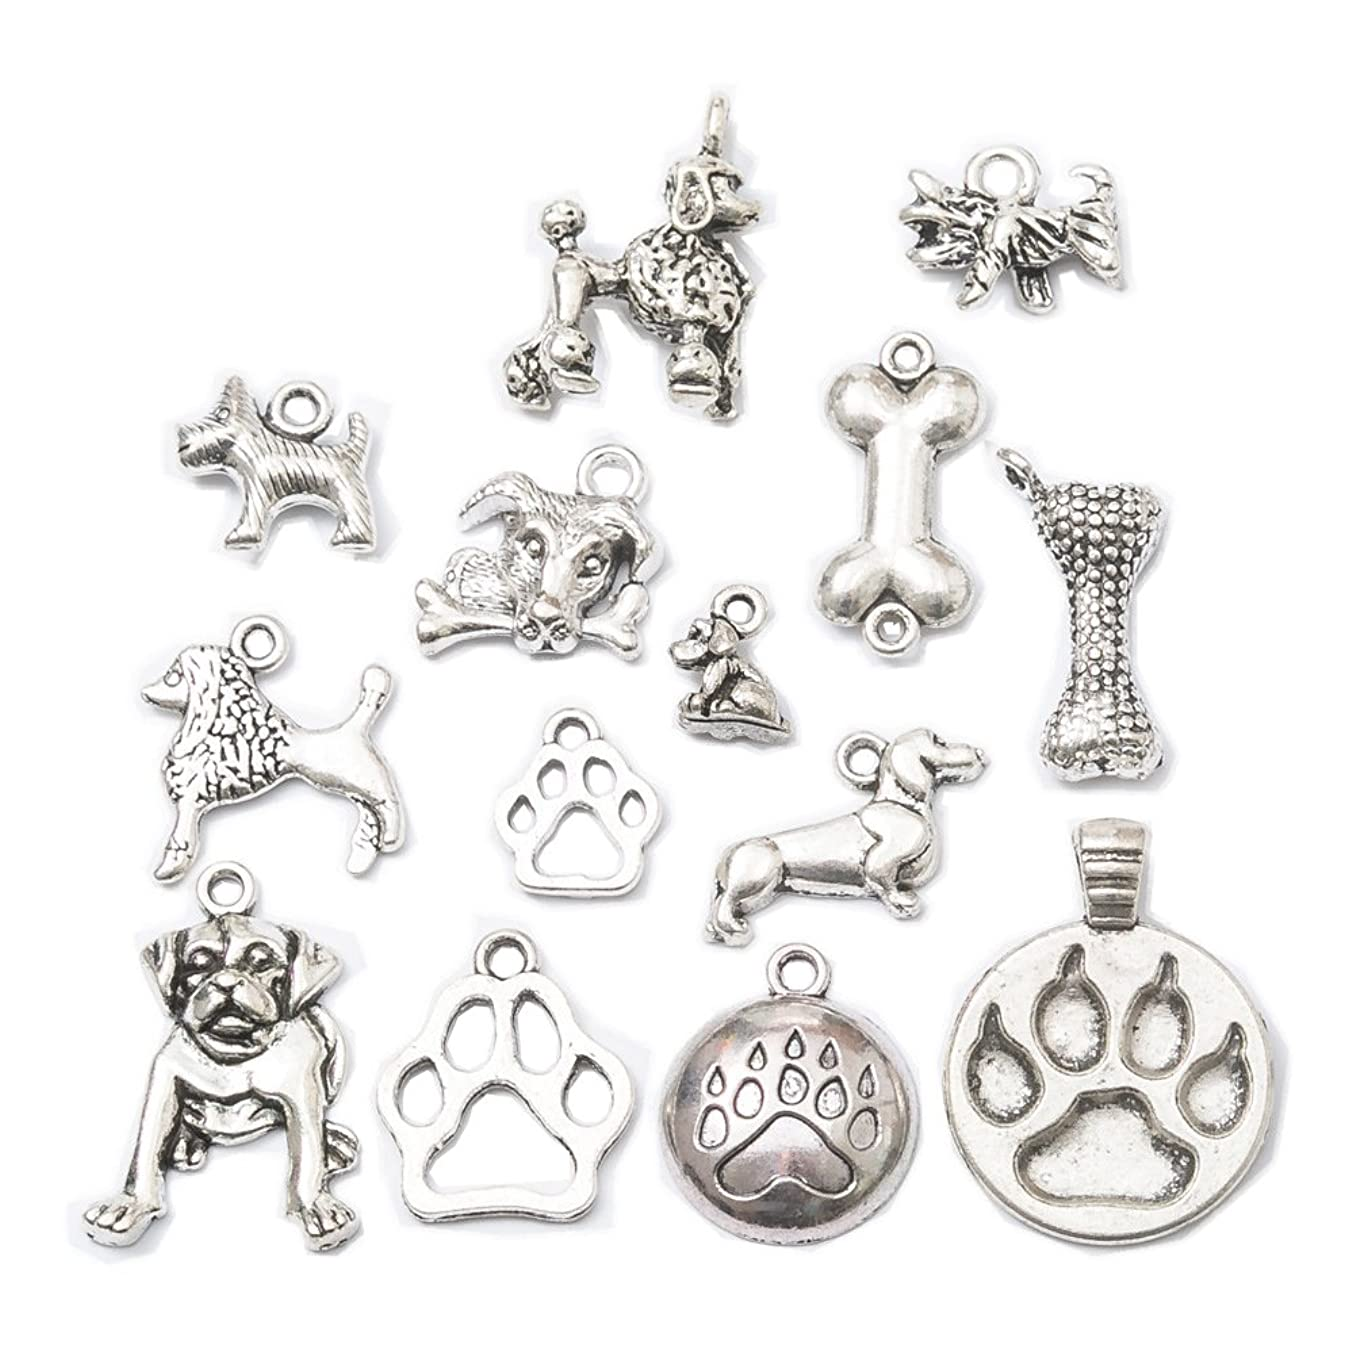 28pcs Mixed Tibetan Silver Plated Animals Dogs Charms Pendants Jewelry Making DIY Charm Handmade Crafts(Dog Charms)